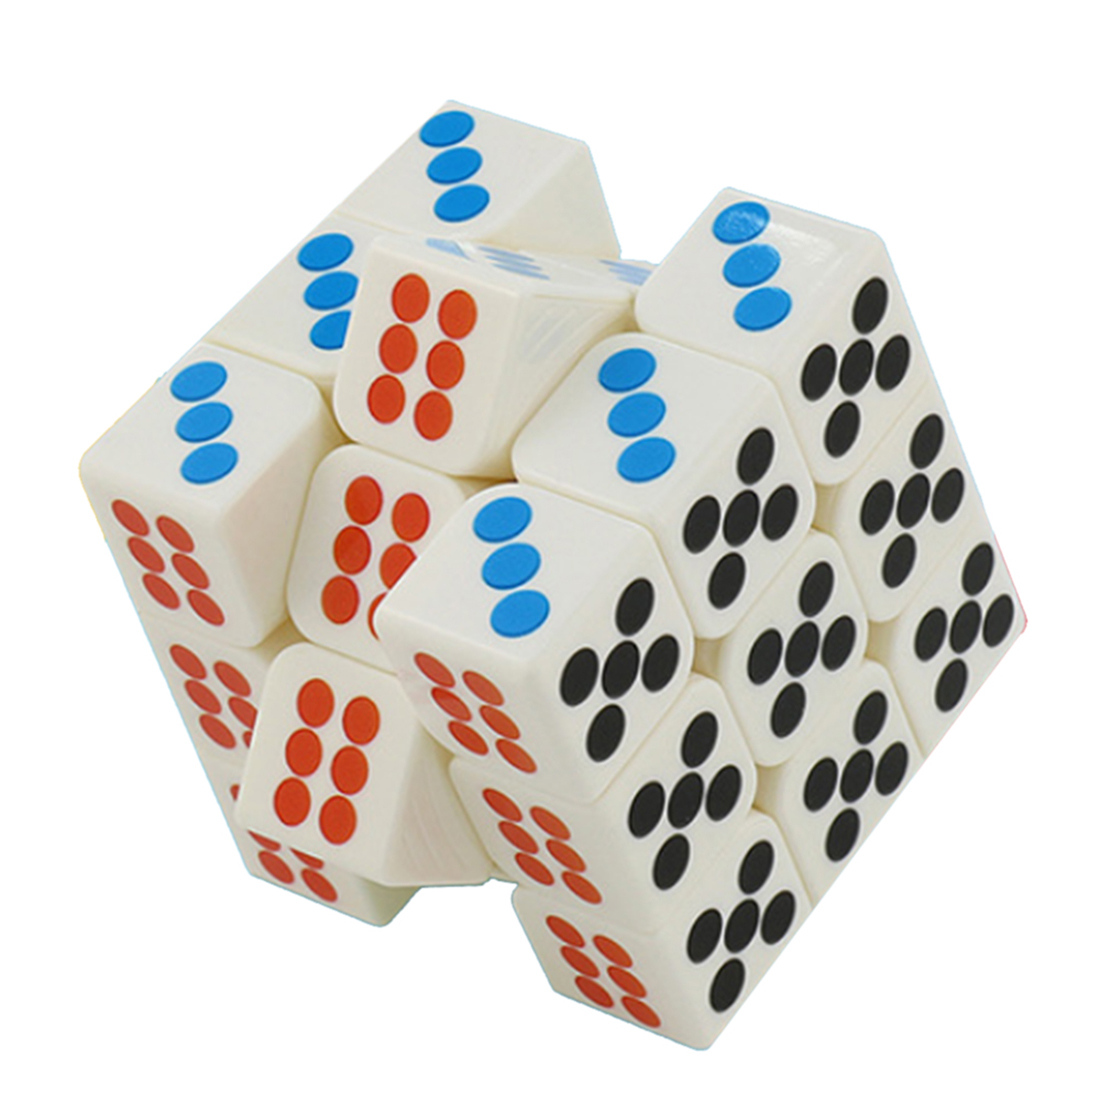 Cubing Classroom MF8827 Smooth 3x3x3 Dice Magic Cube Puzzle Toys For Pressure Reduction - Colorful